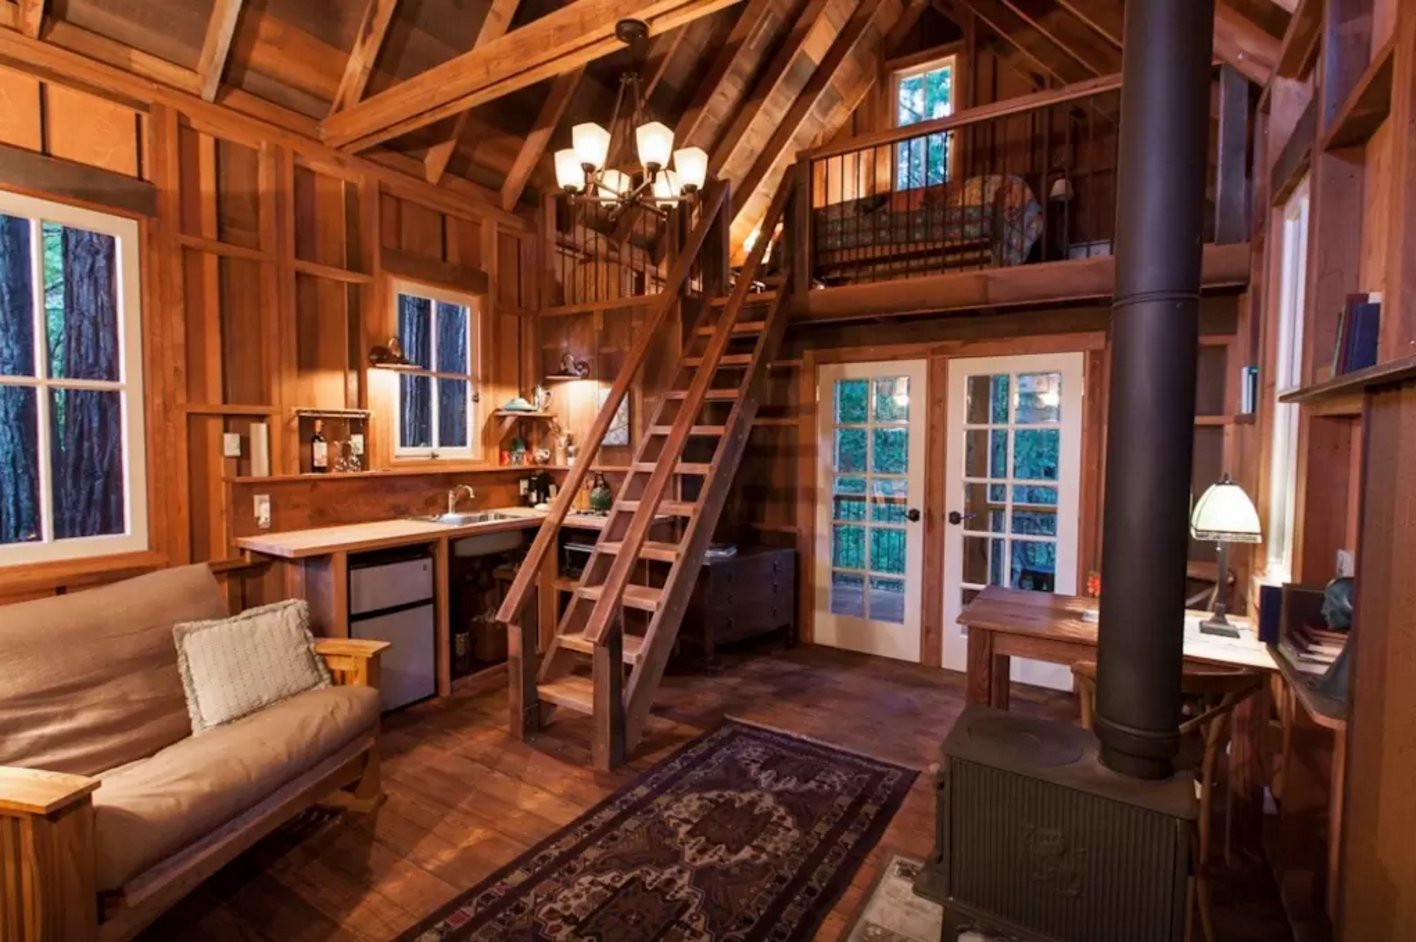 https://www.airbnb.com/rooms/1080828